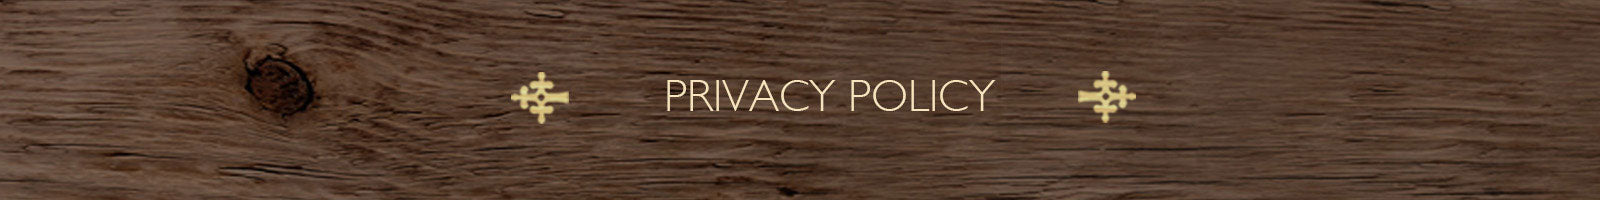 Privacy Policy - The India Craft House